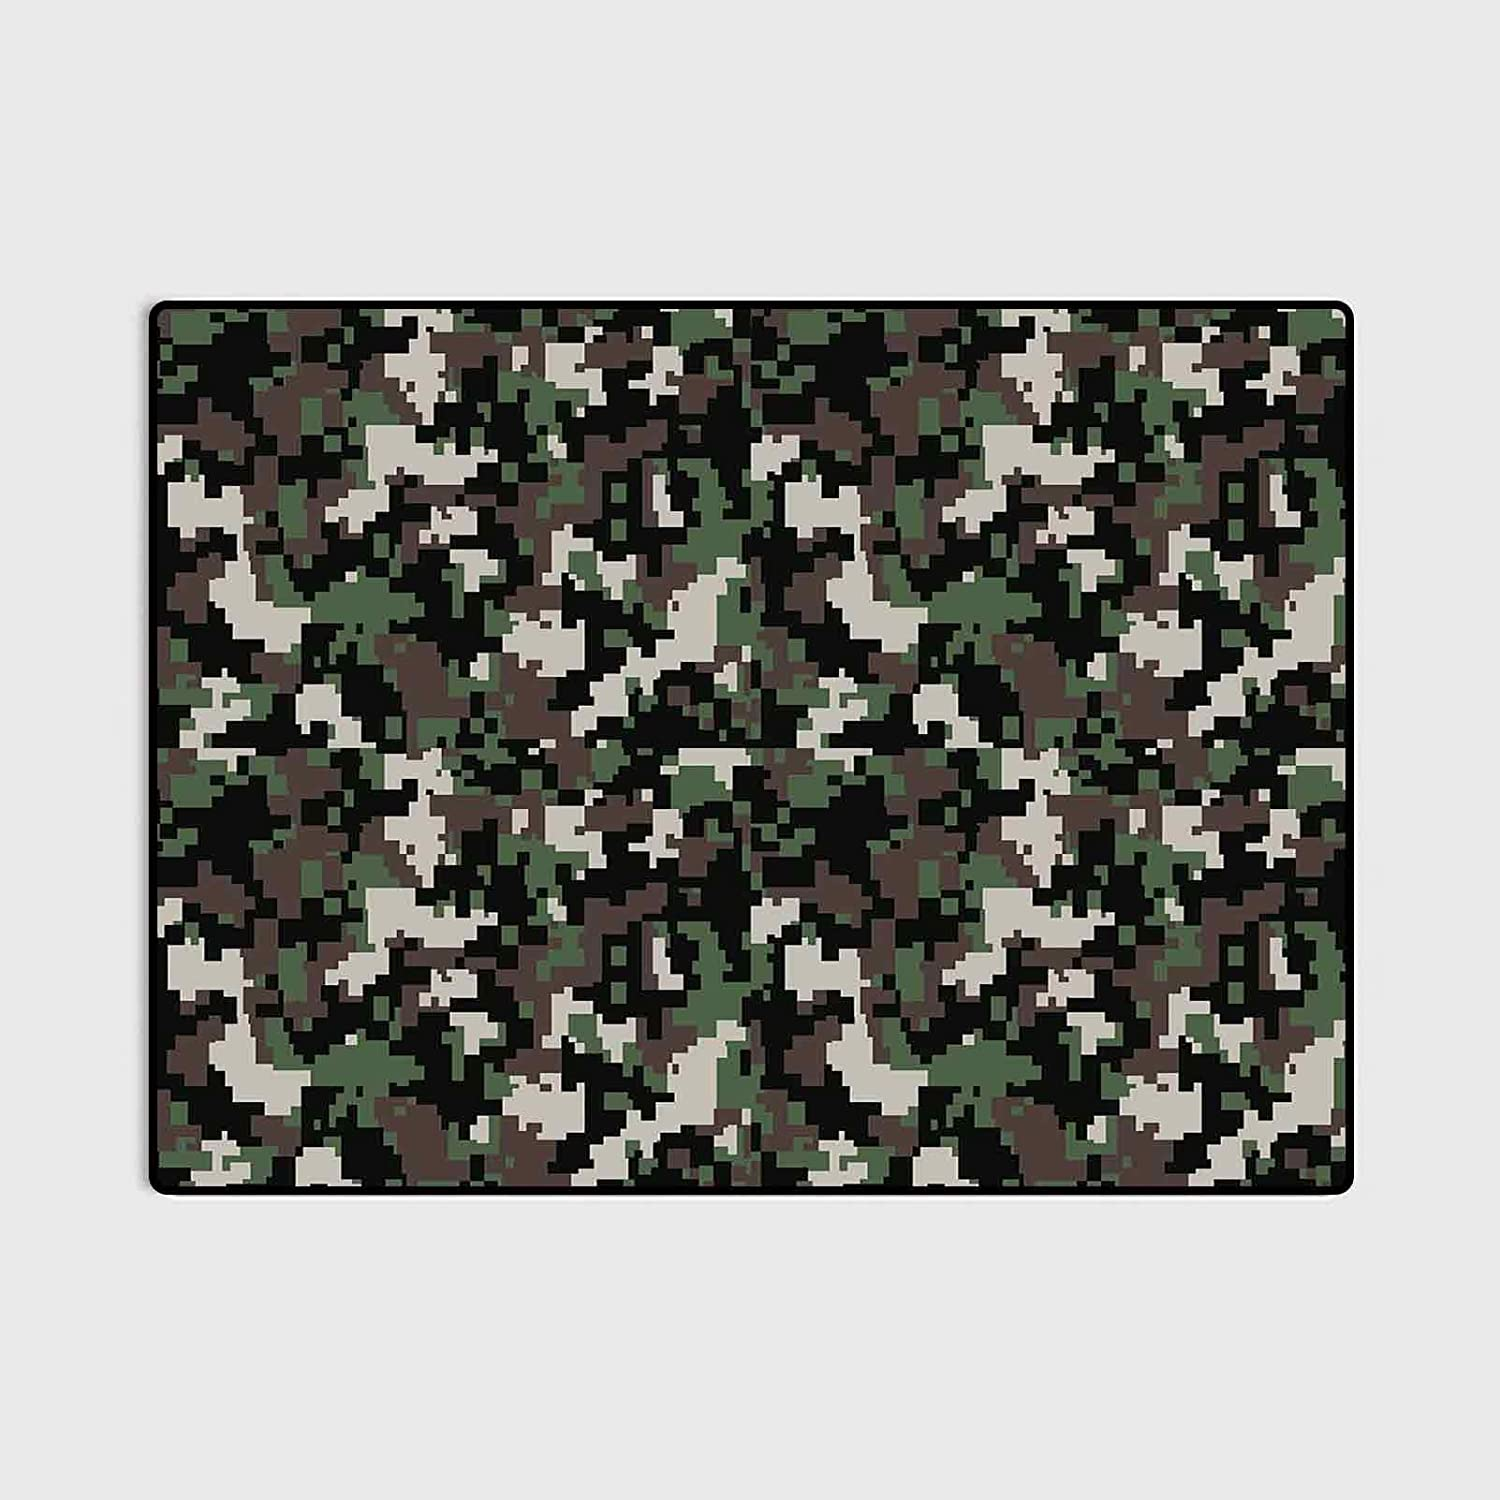 Camo Soft Area Rugs for Bedroom Girls Room Living Room Pixelated Pattern Digital Effect Modern Conceptual Camouflage Texture Floor mat for Office Chair Carpet Army Green Beige Brown 6 x 8.8 Ft